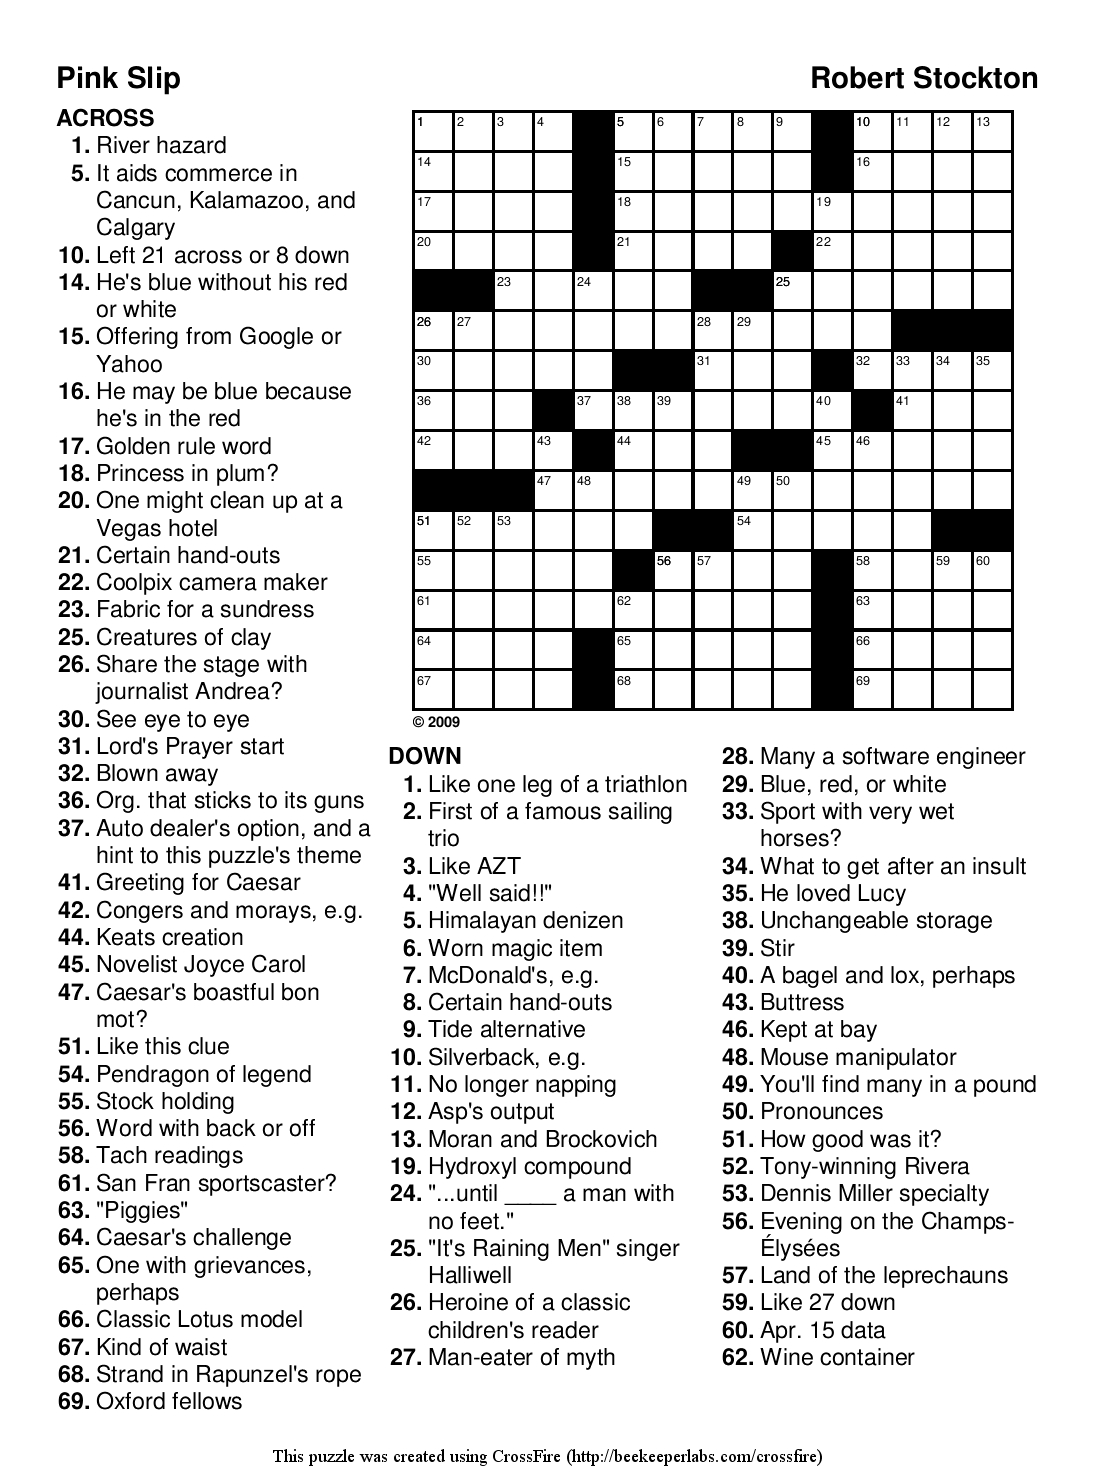 Printable Puzzles For Adults | Easy Word Puzzles Printable Festivals - Printable Crossword Puzzles With Solutions